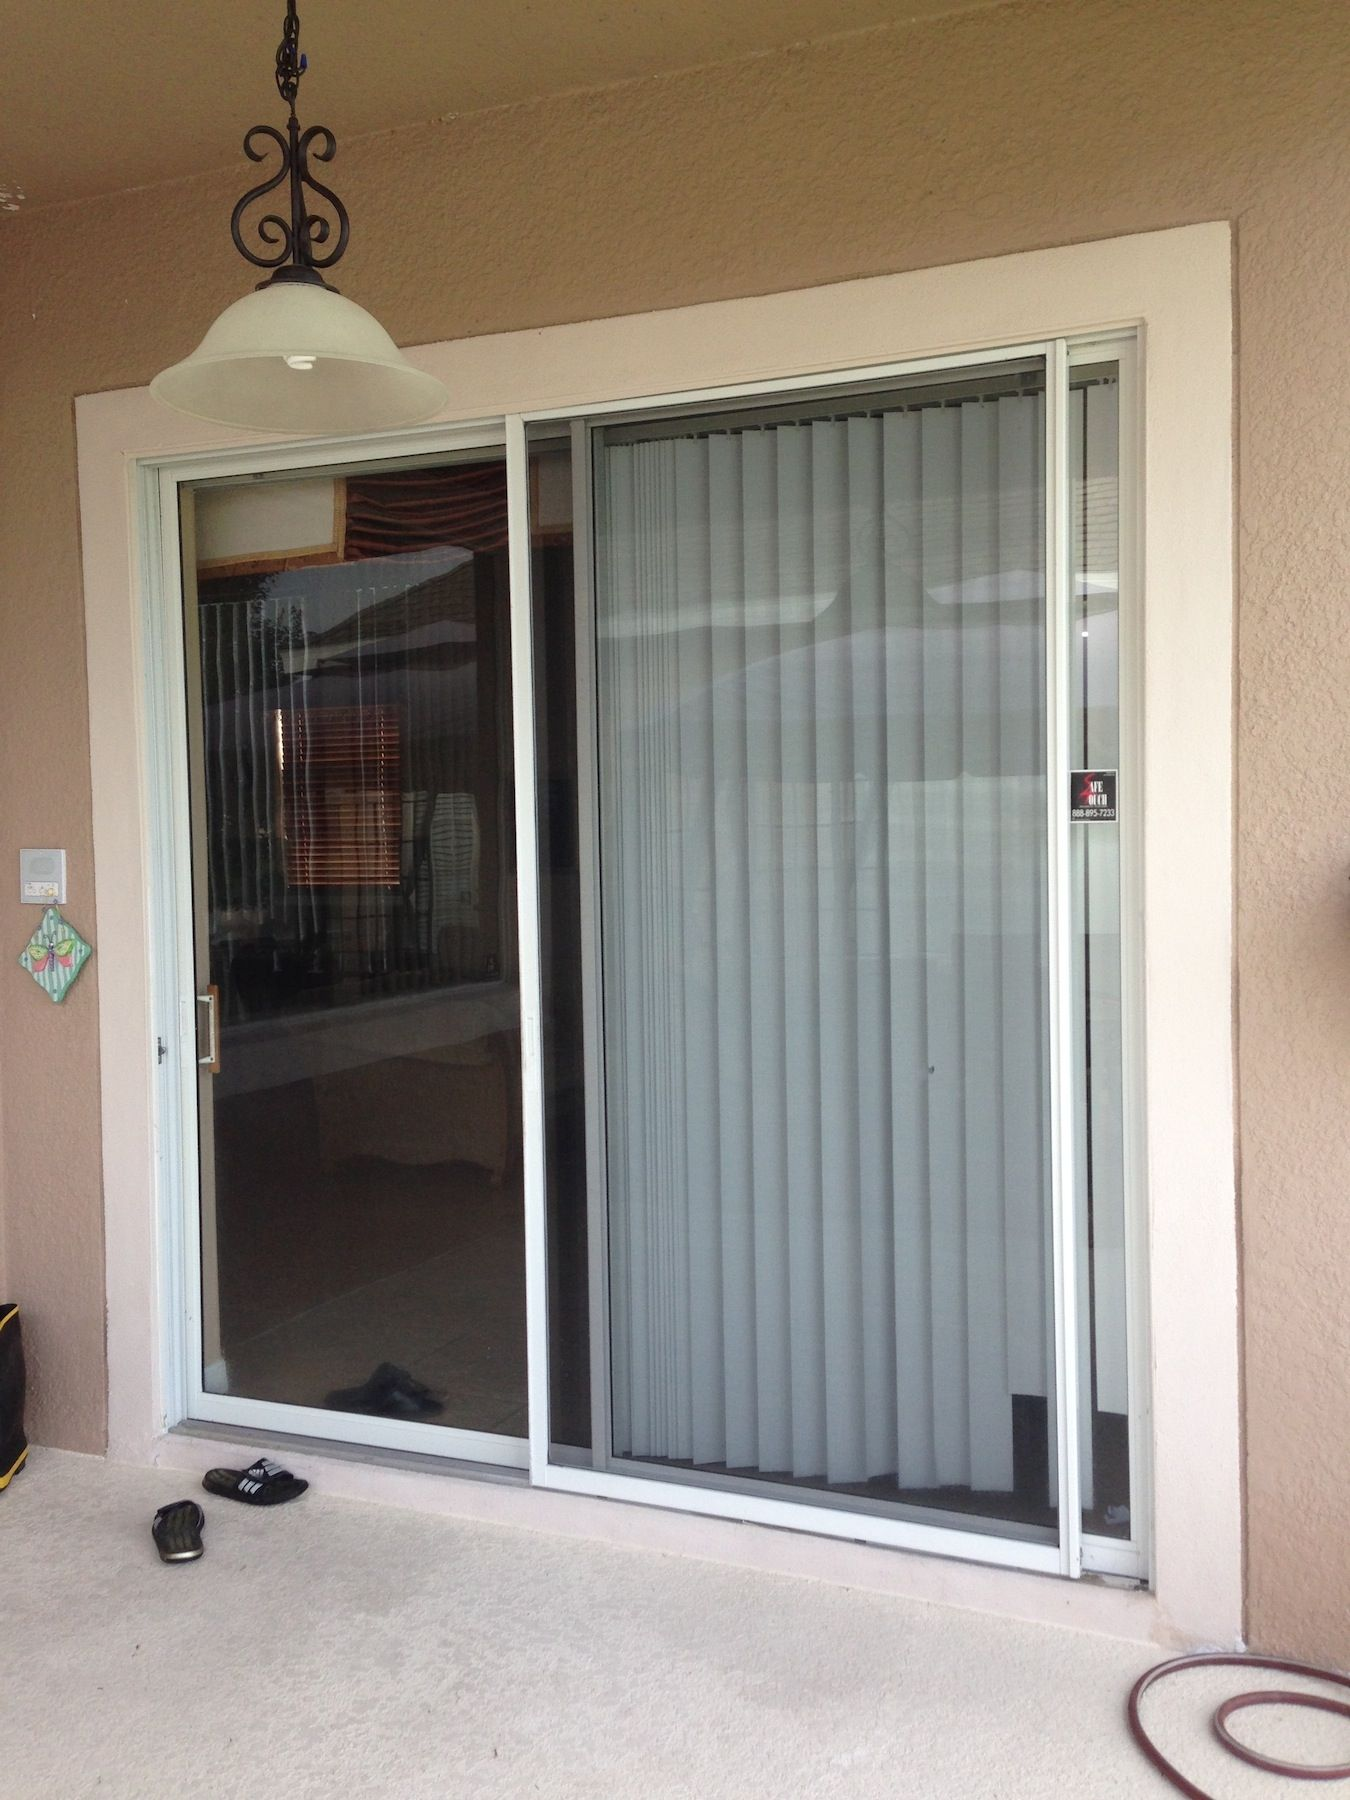 Patio door privacy window film httpbukuweb pinterest patio door privacy window film planetlyrics Choice Image